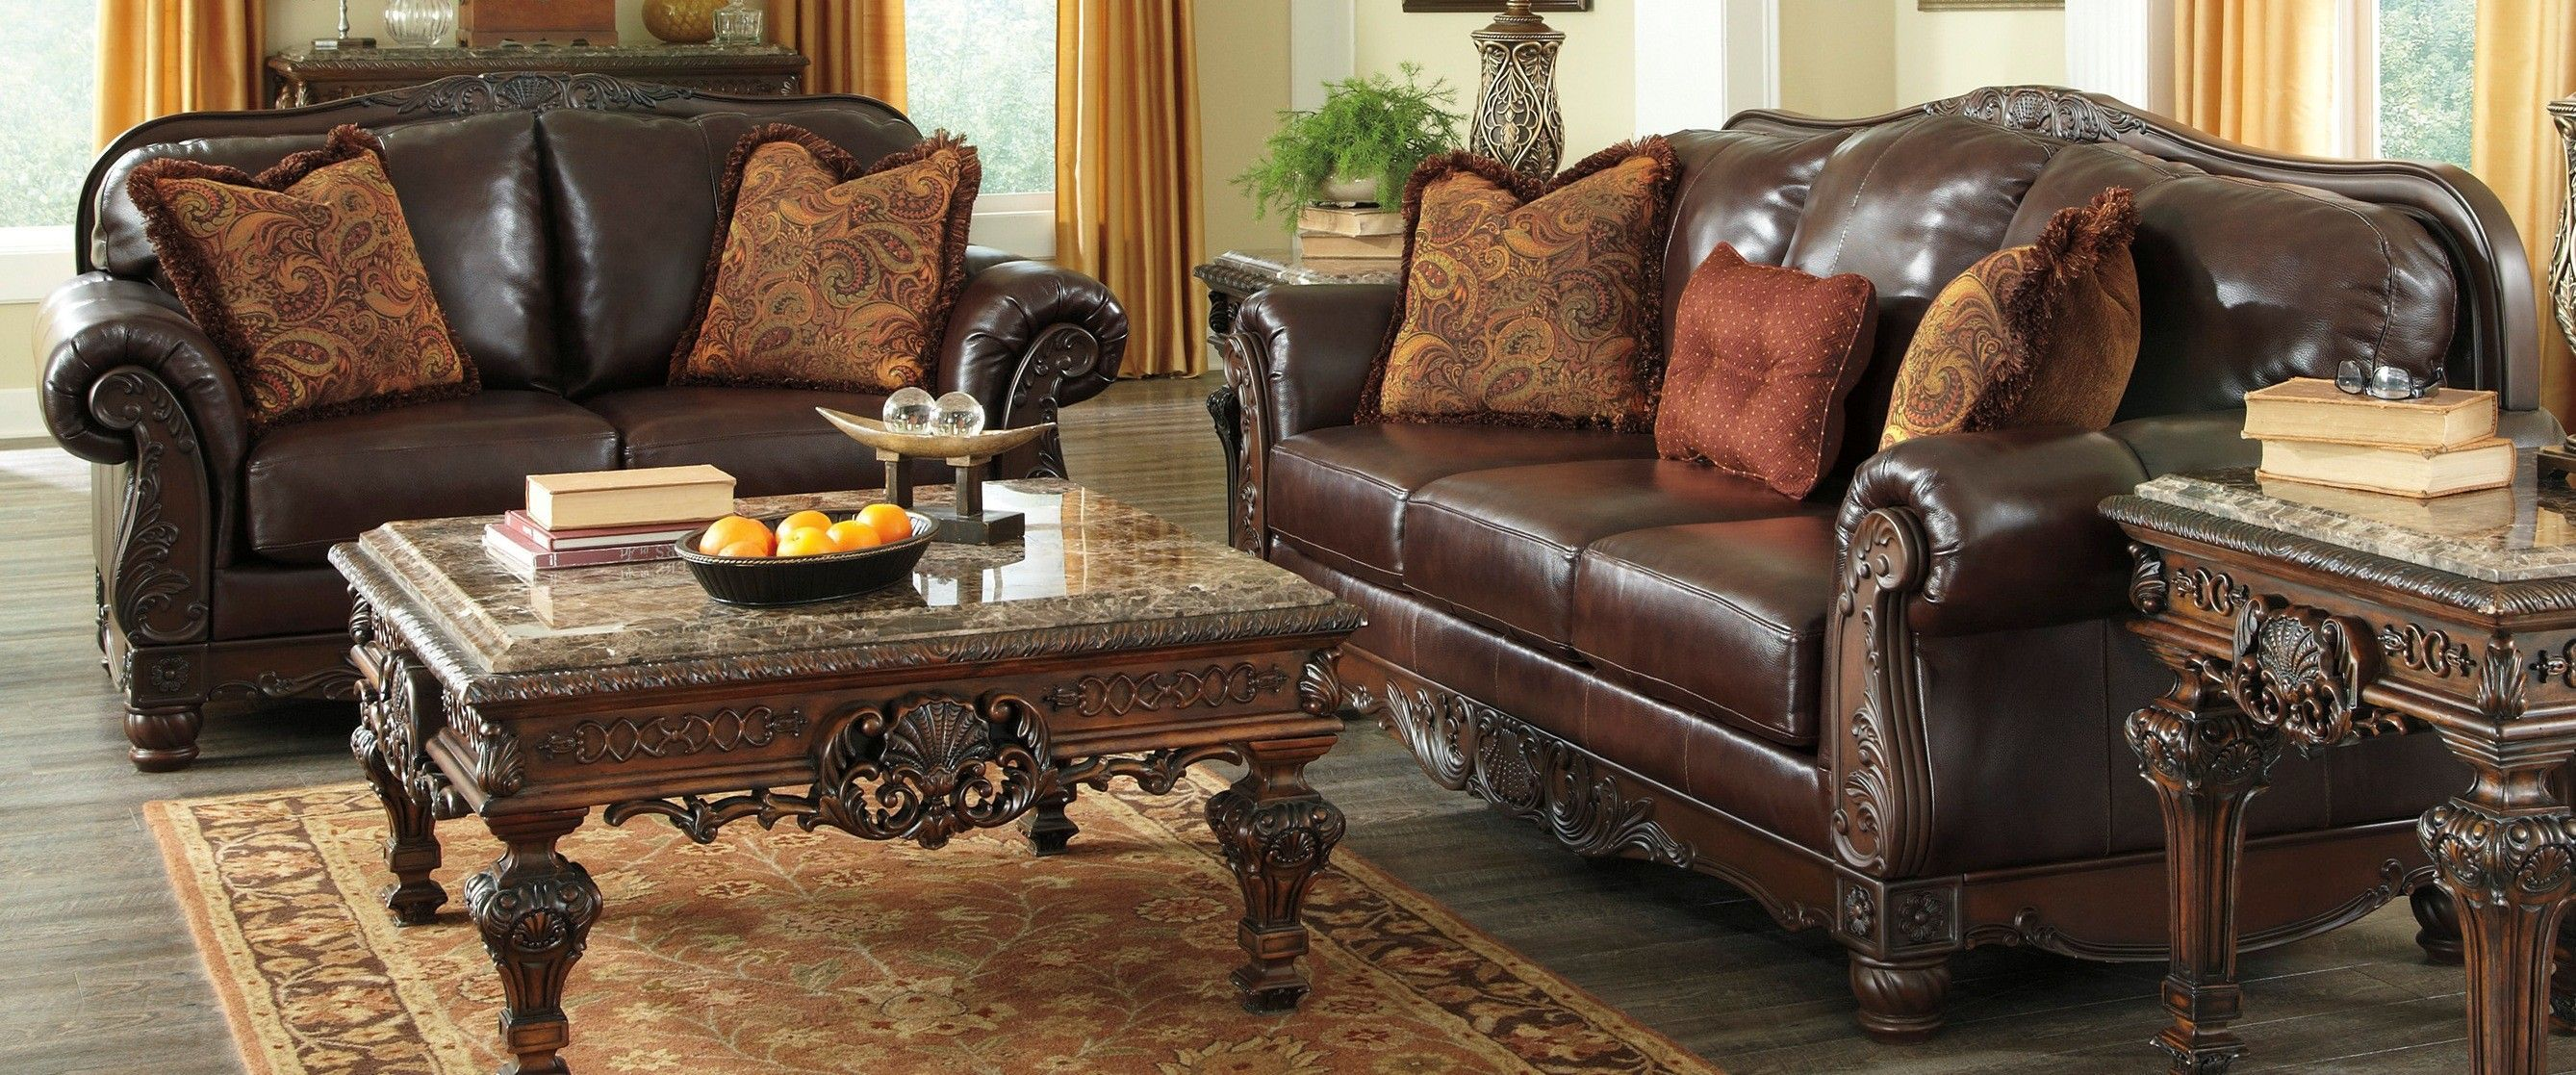 12 Smart Ideas How To Makeover Ashley North Shore Living Room Set In 2020 Cheap Living Room Sets Living Room Leather Living Room Sets